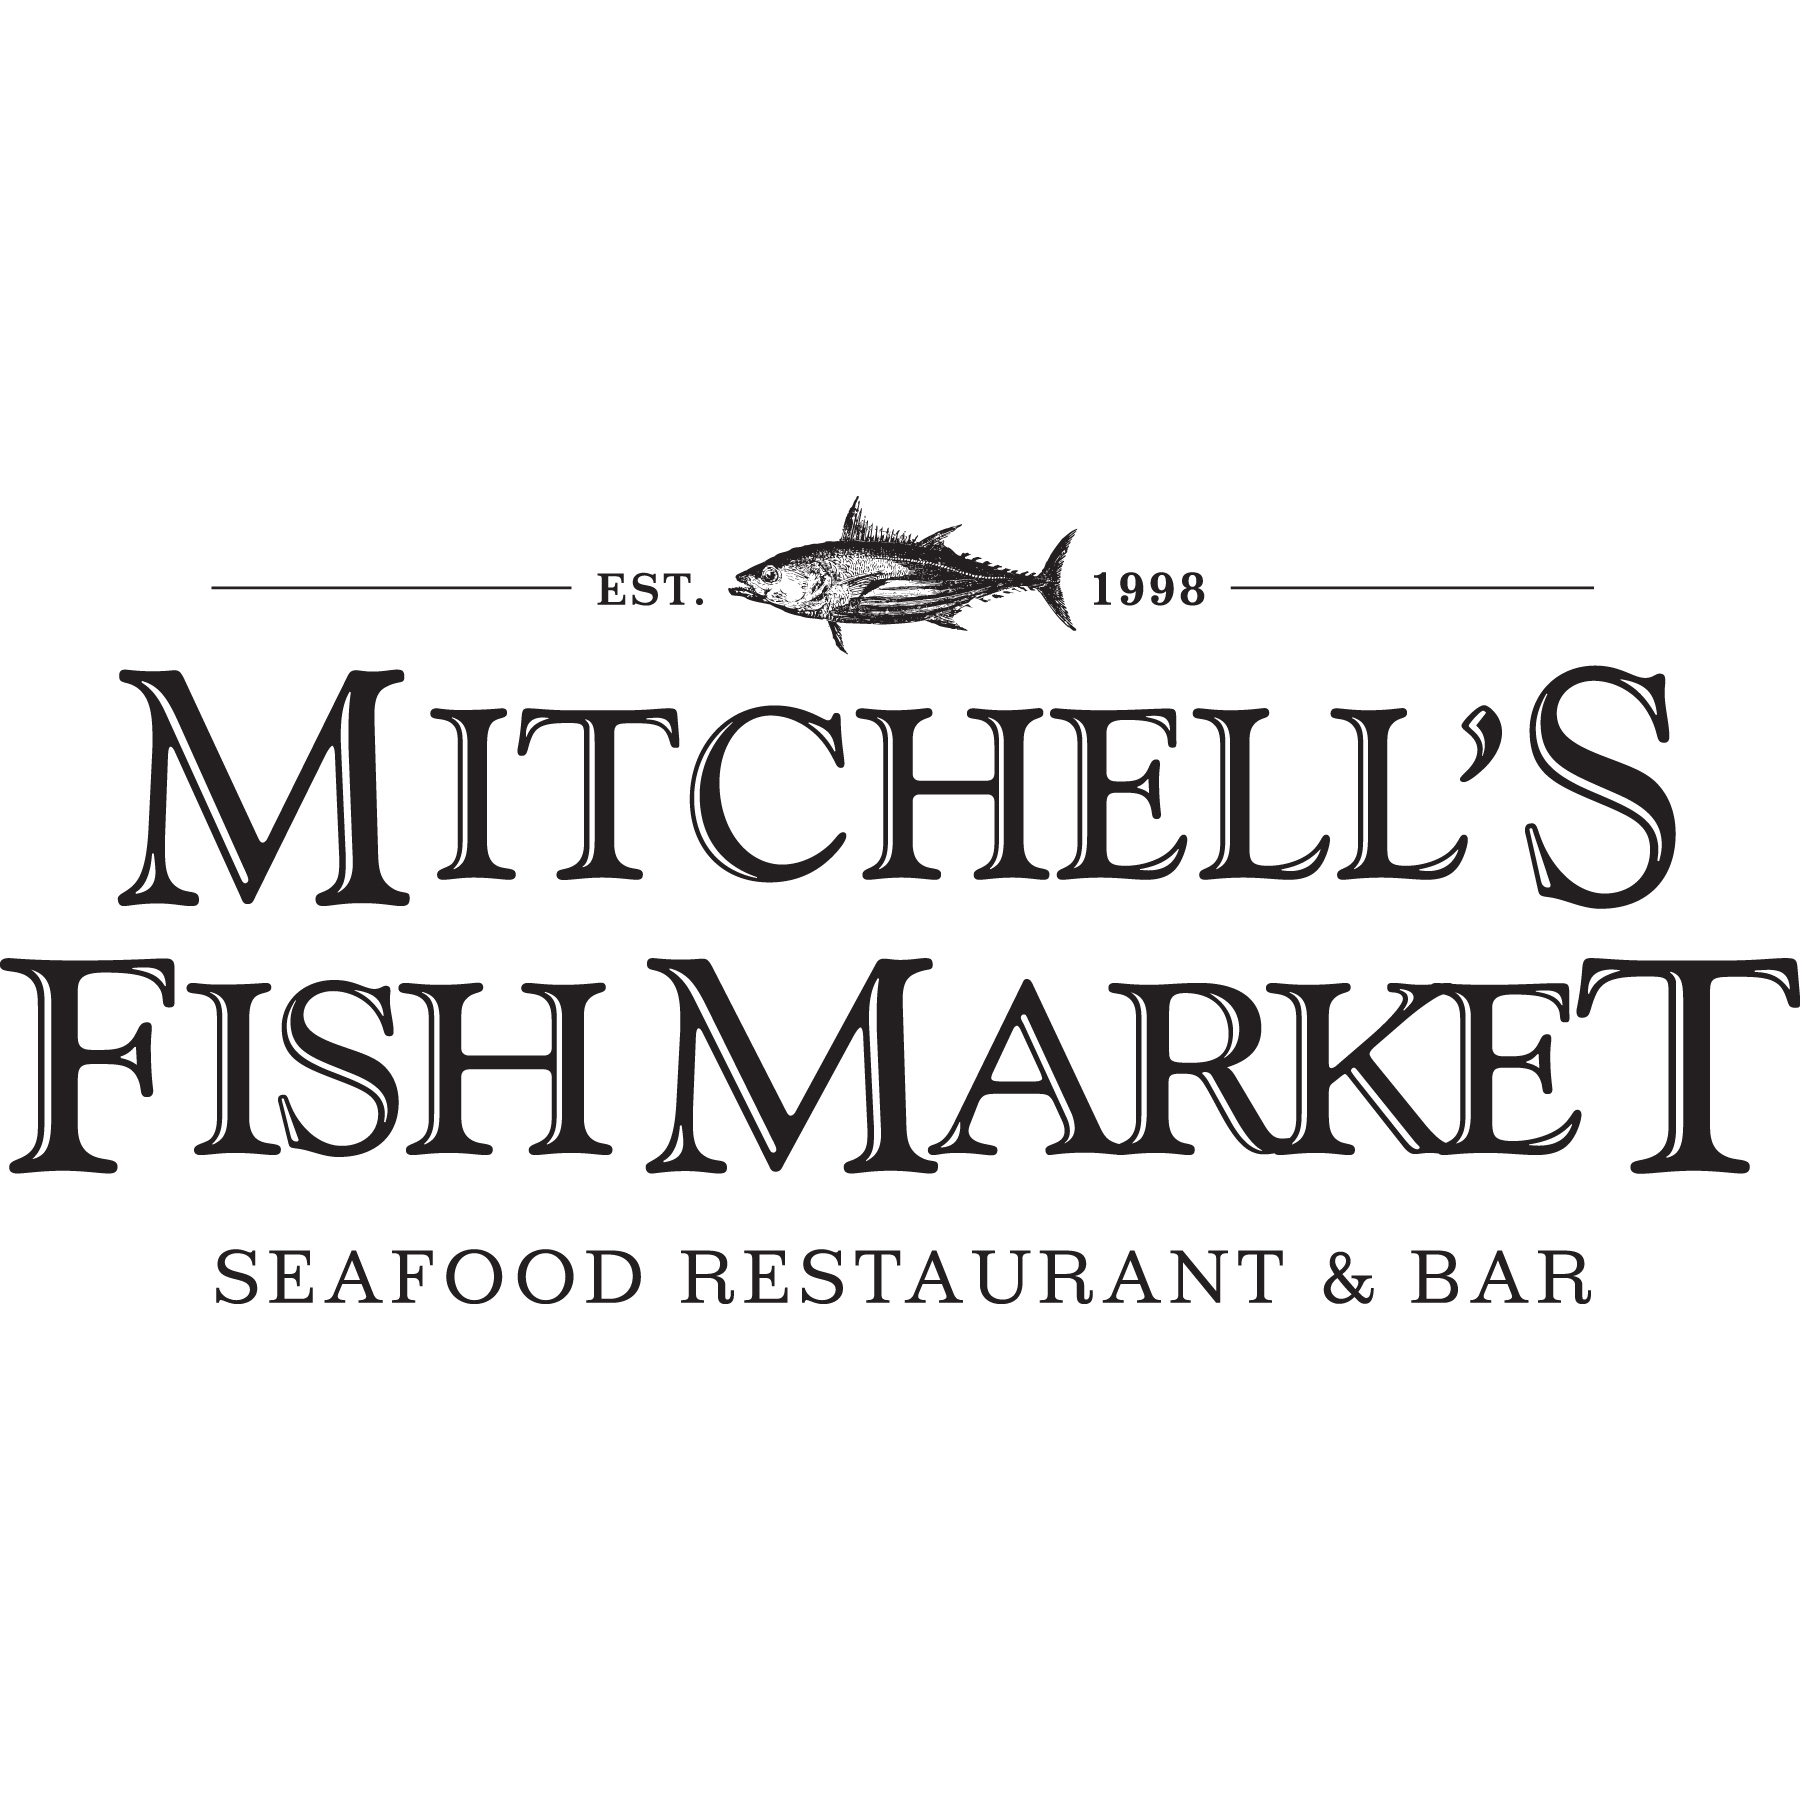 Mitchell 39 s fish market lansing michigan for Mitchells fish market lansing